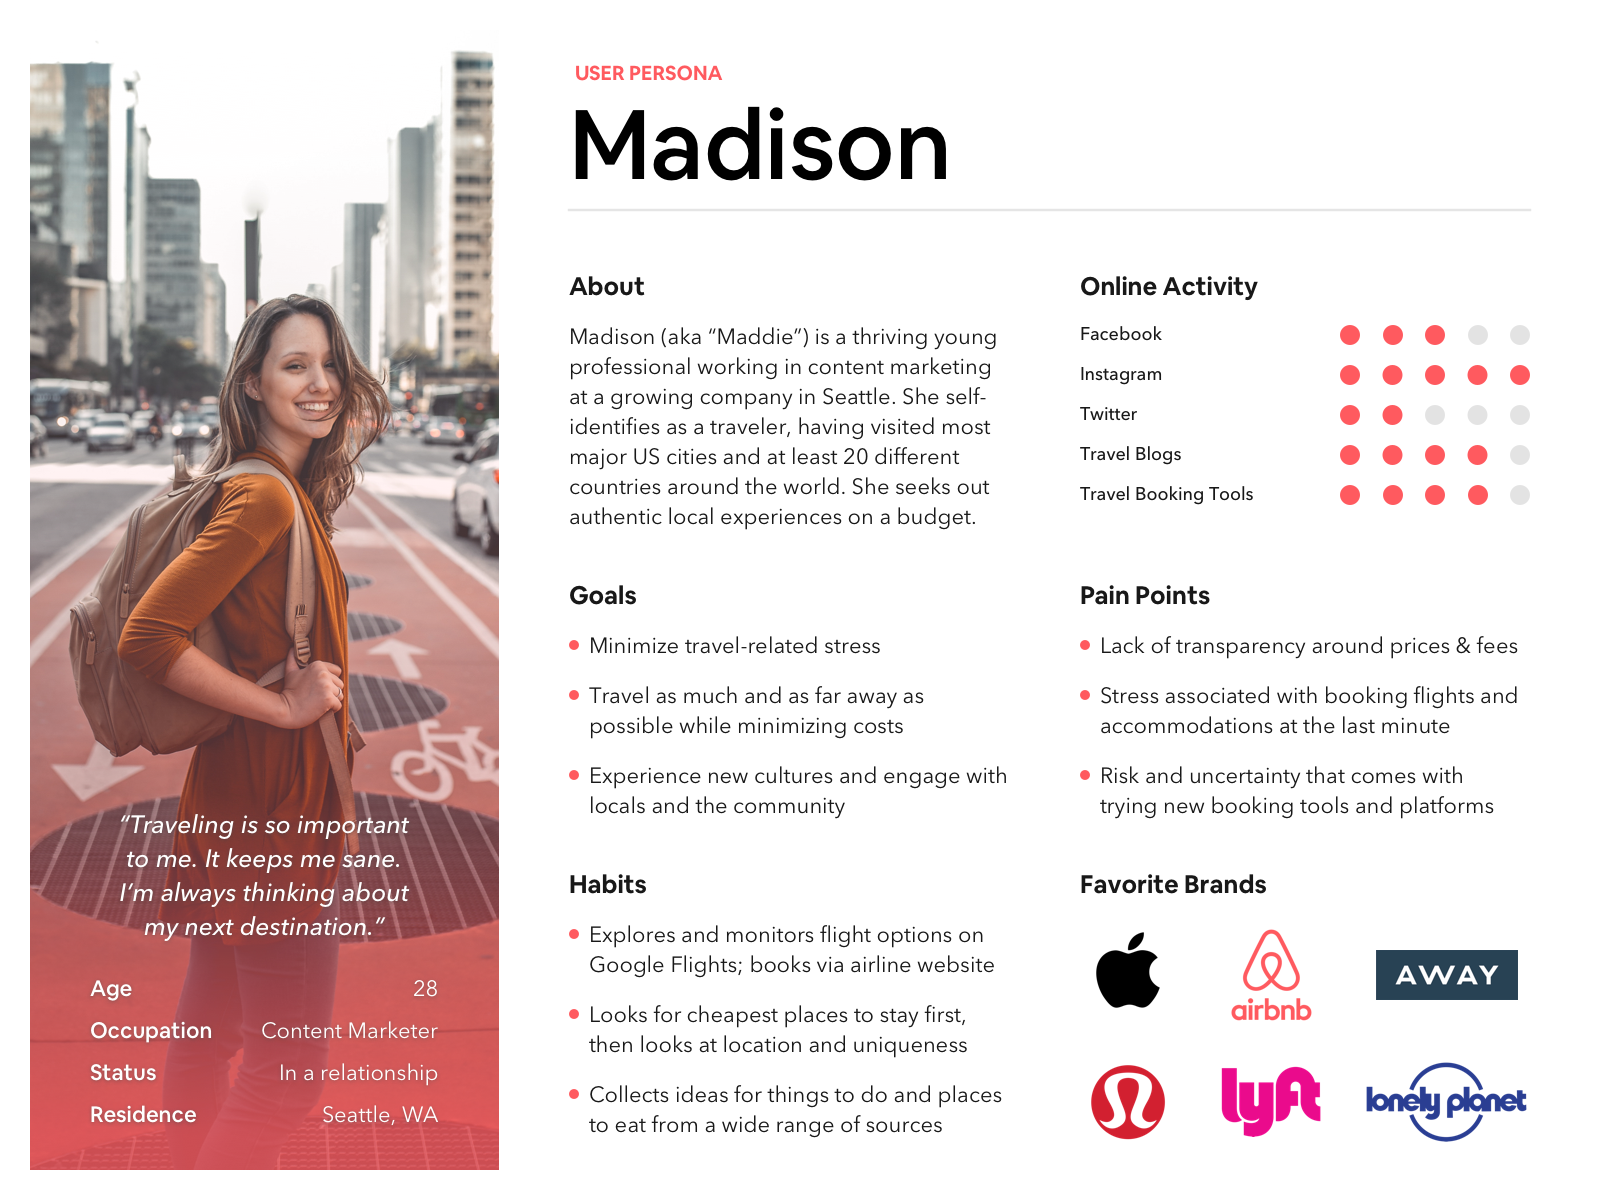 Airbnb User Persona V1.1